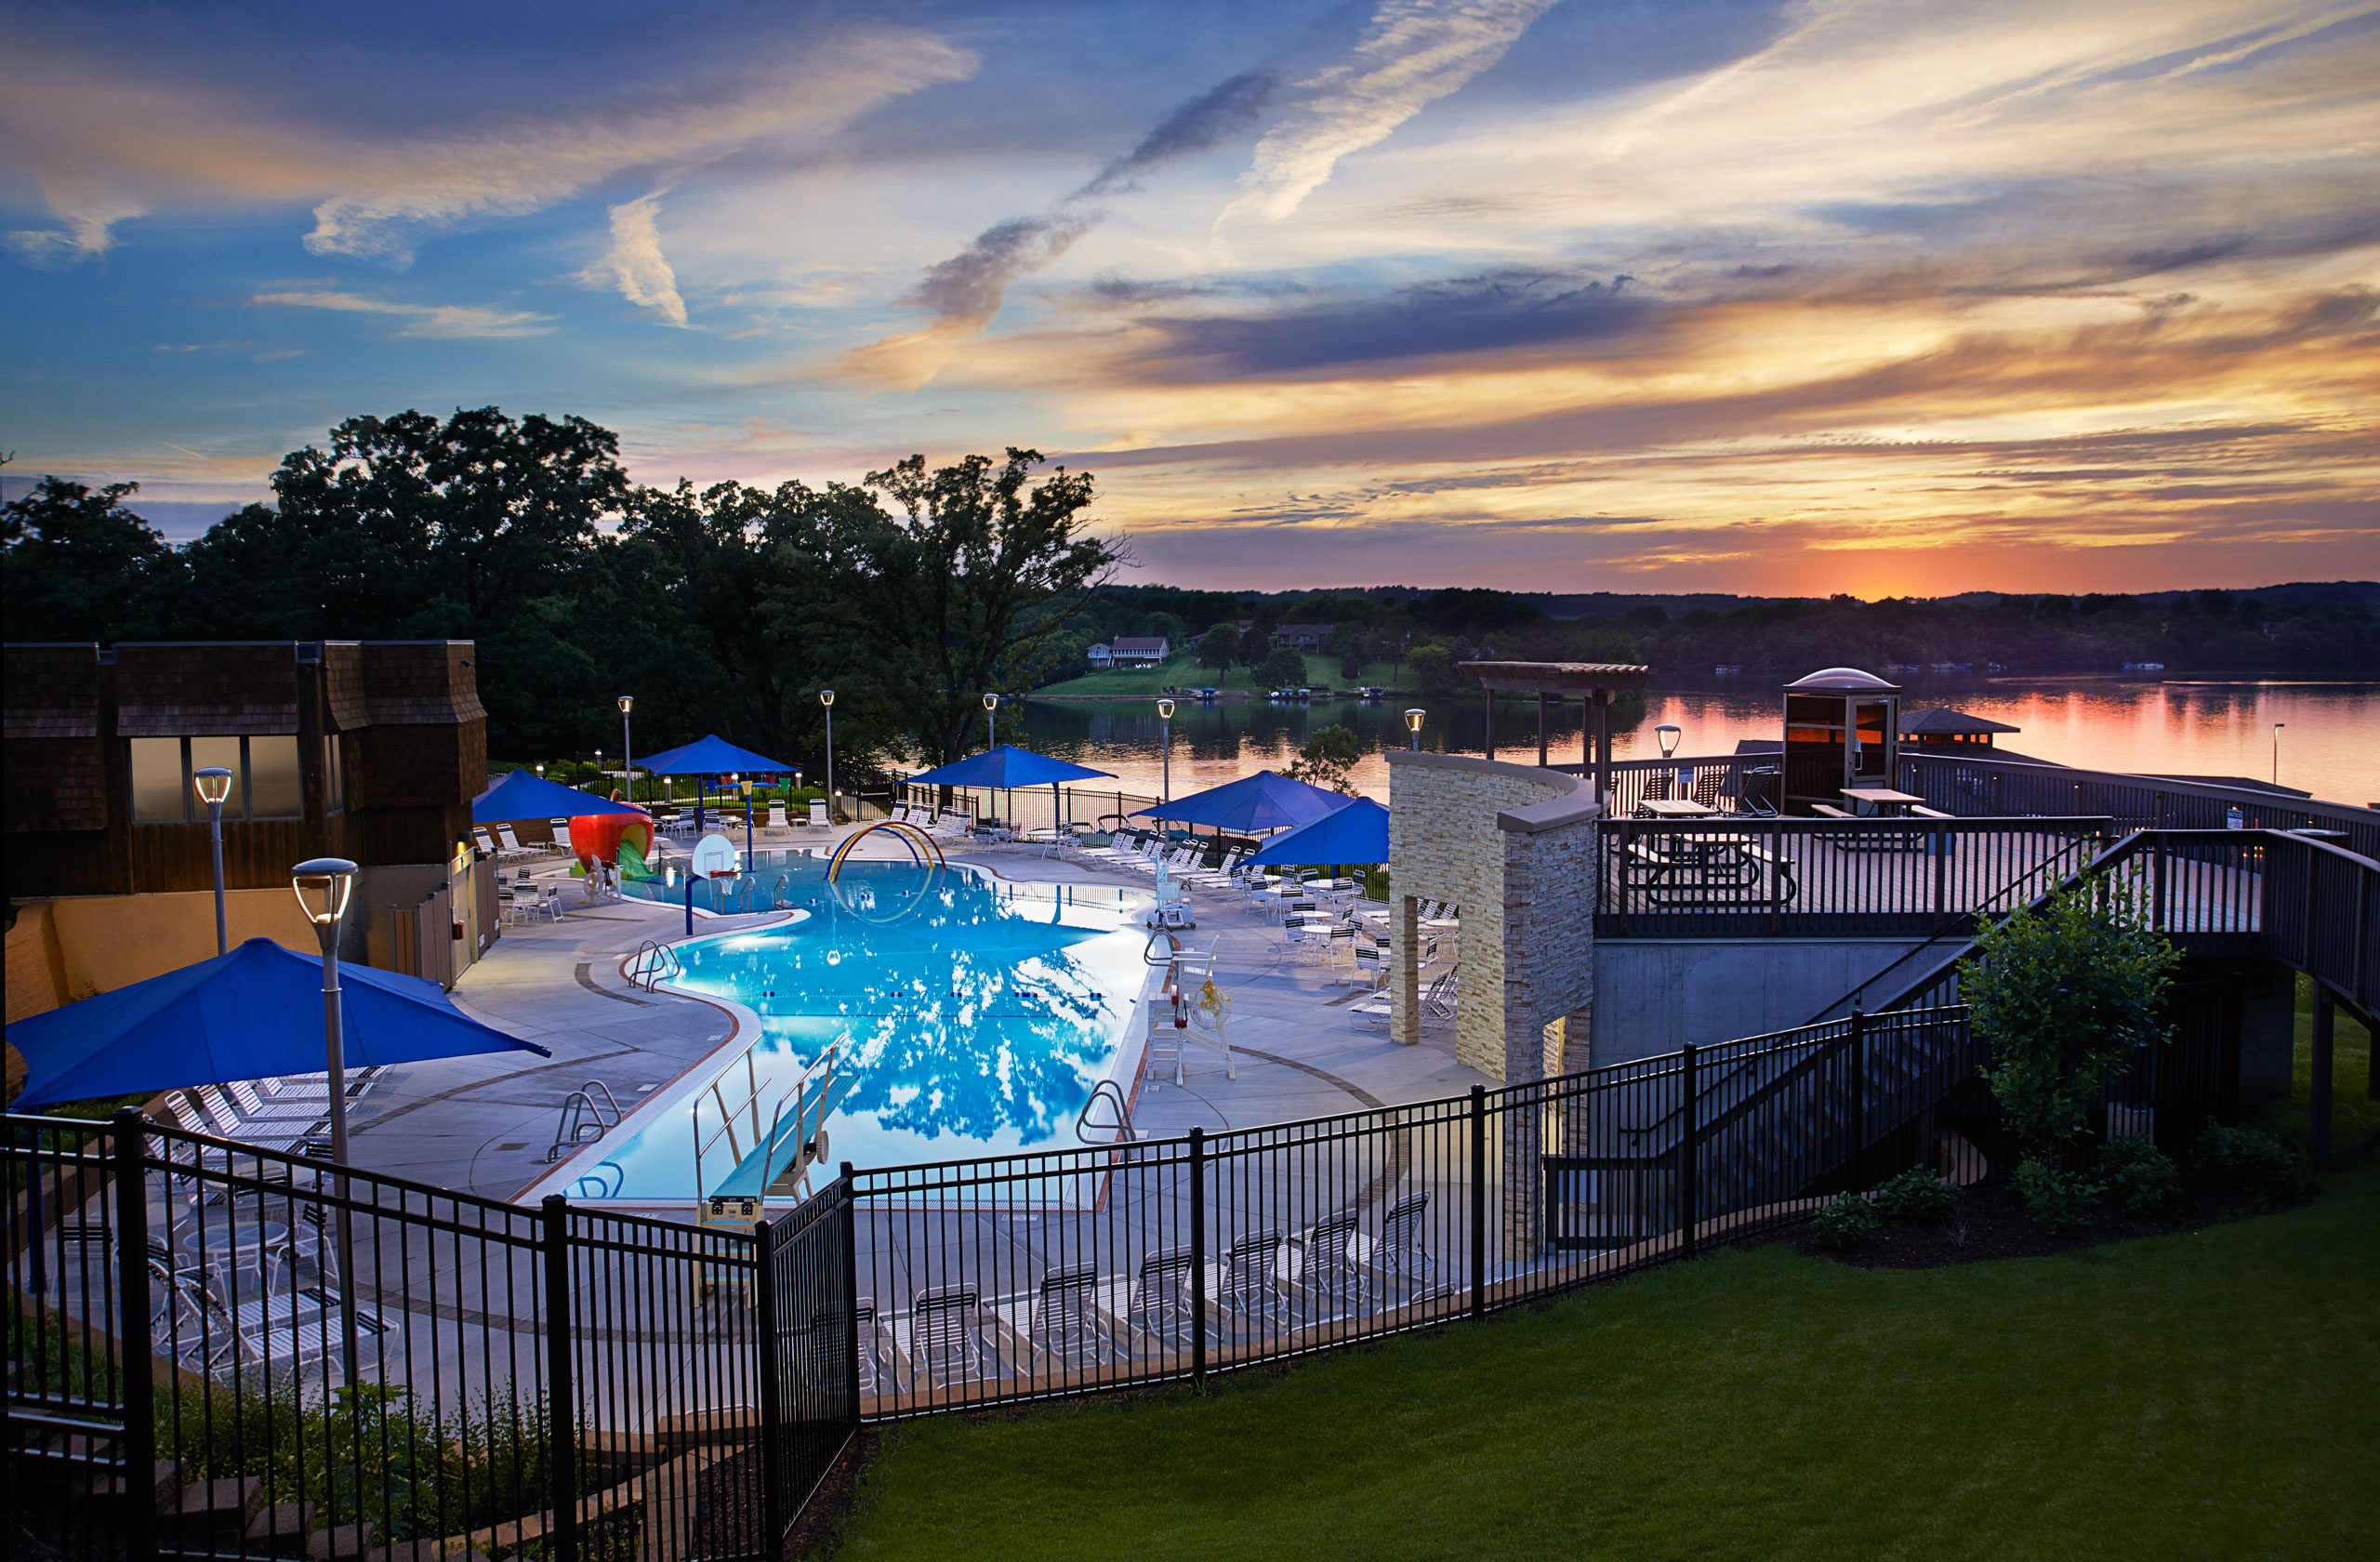 Exterior dusk swimming pool photograph